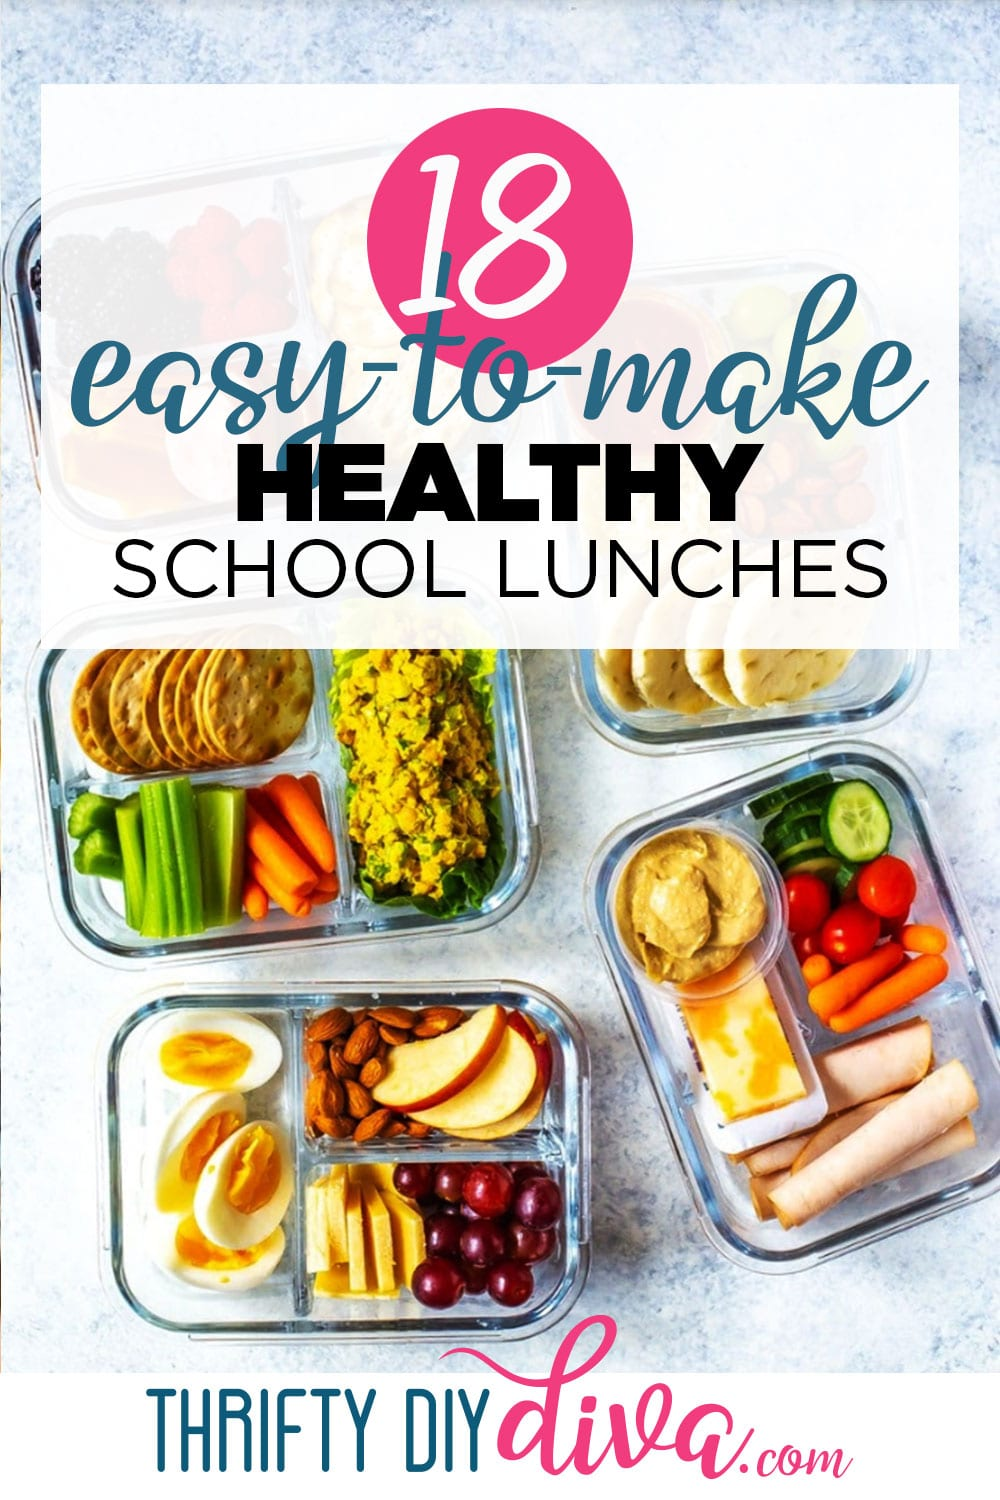 18 Easy to Make Healthy School Lunches